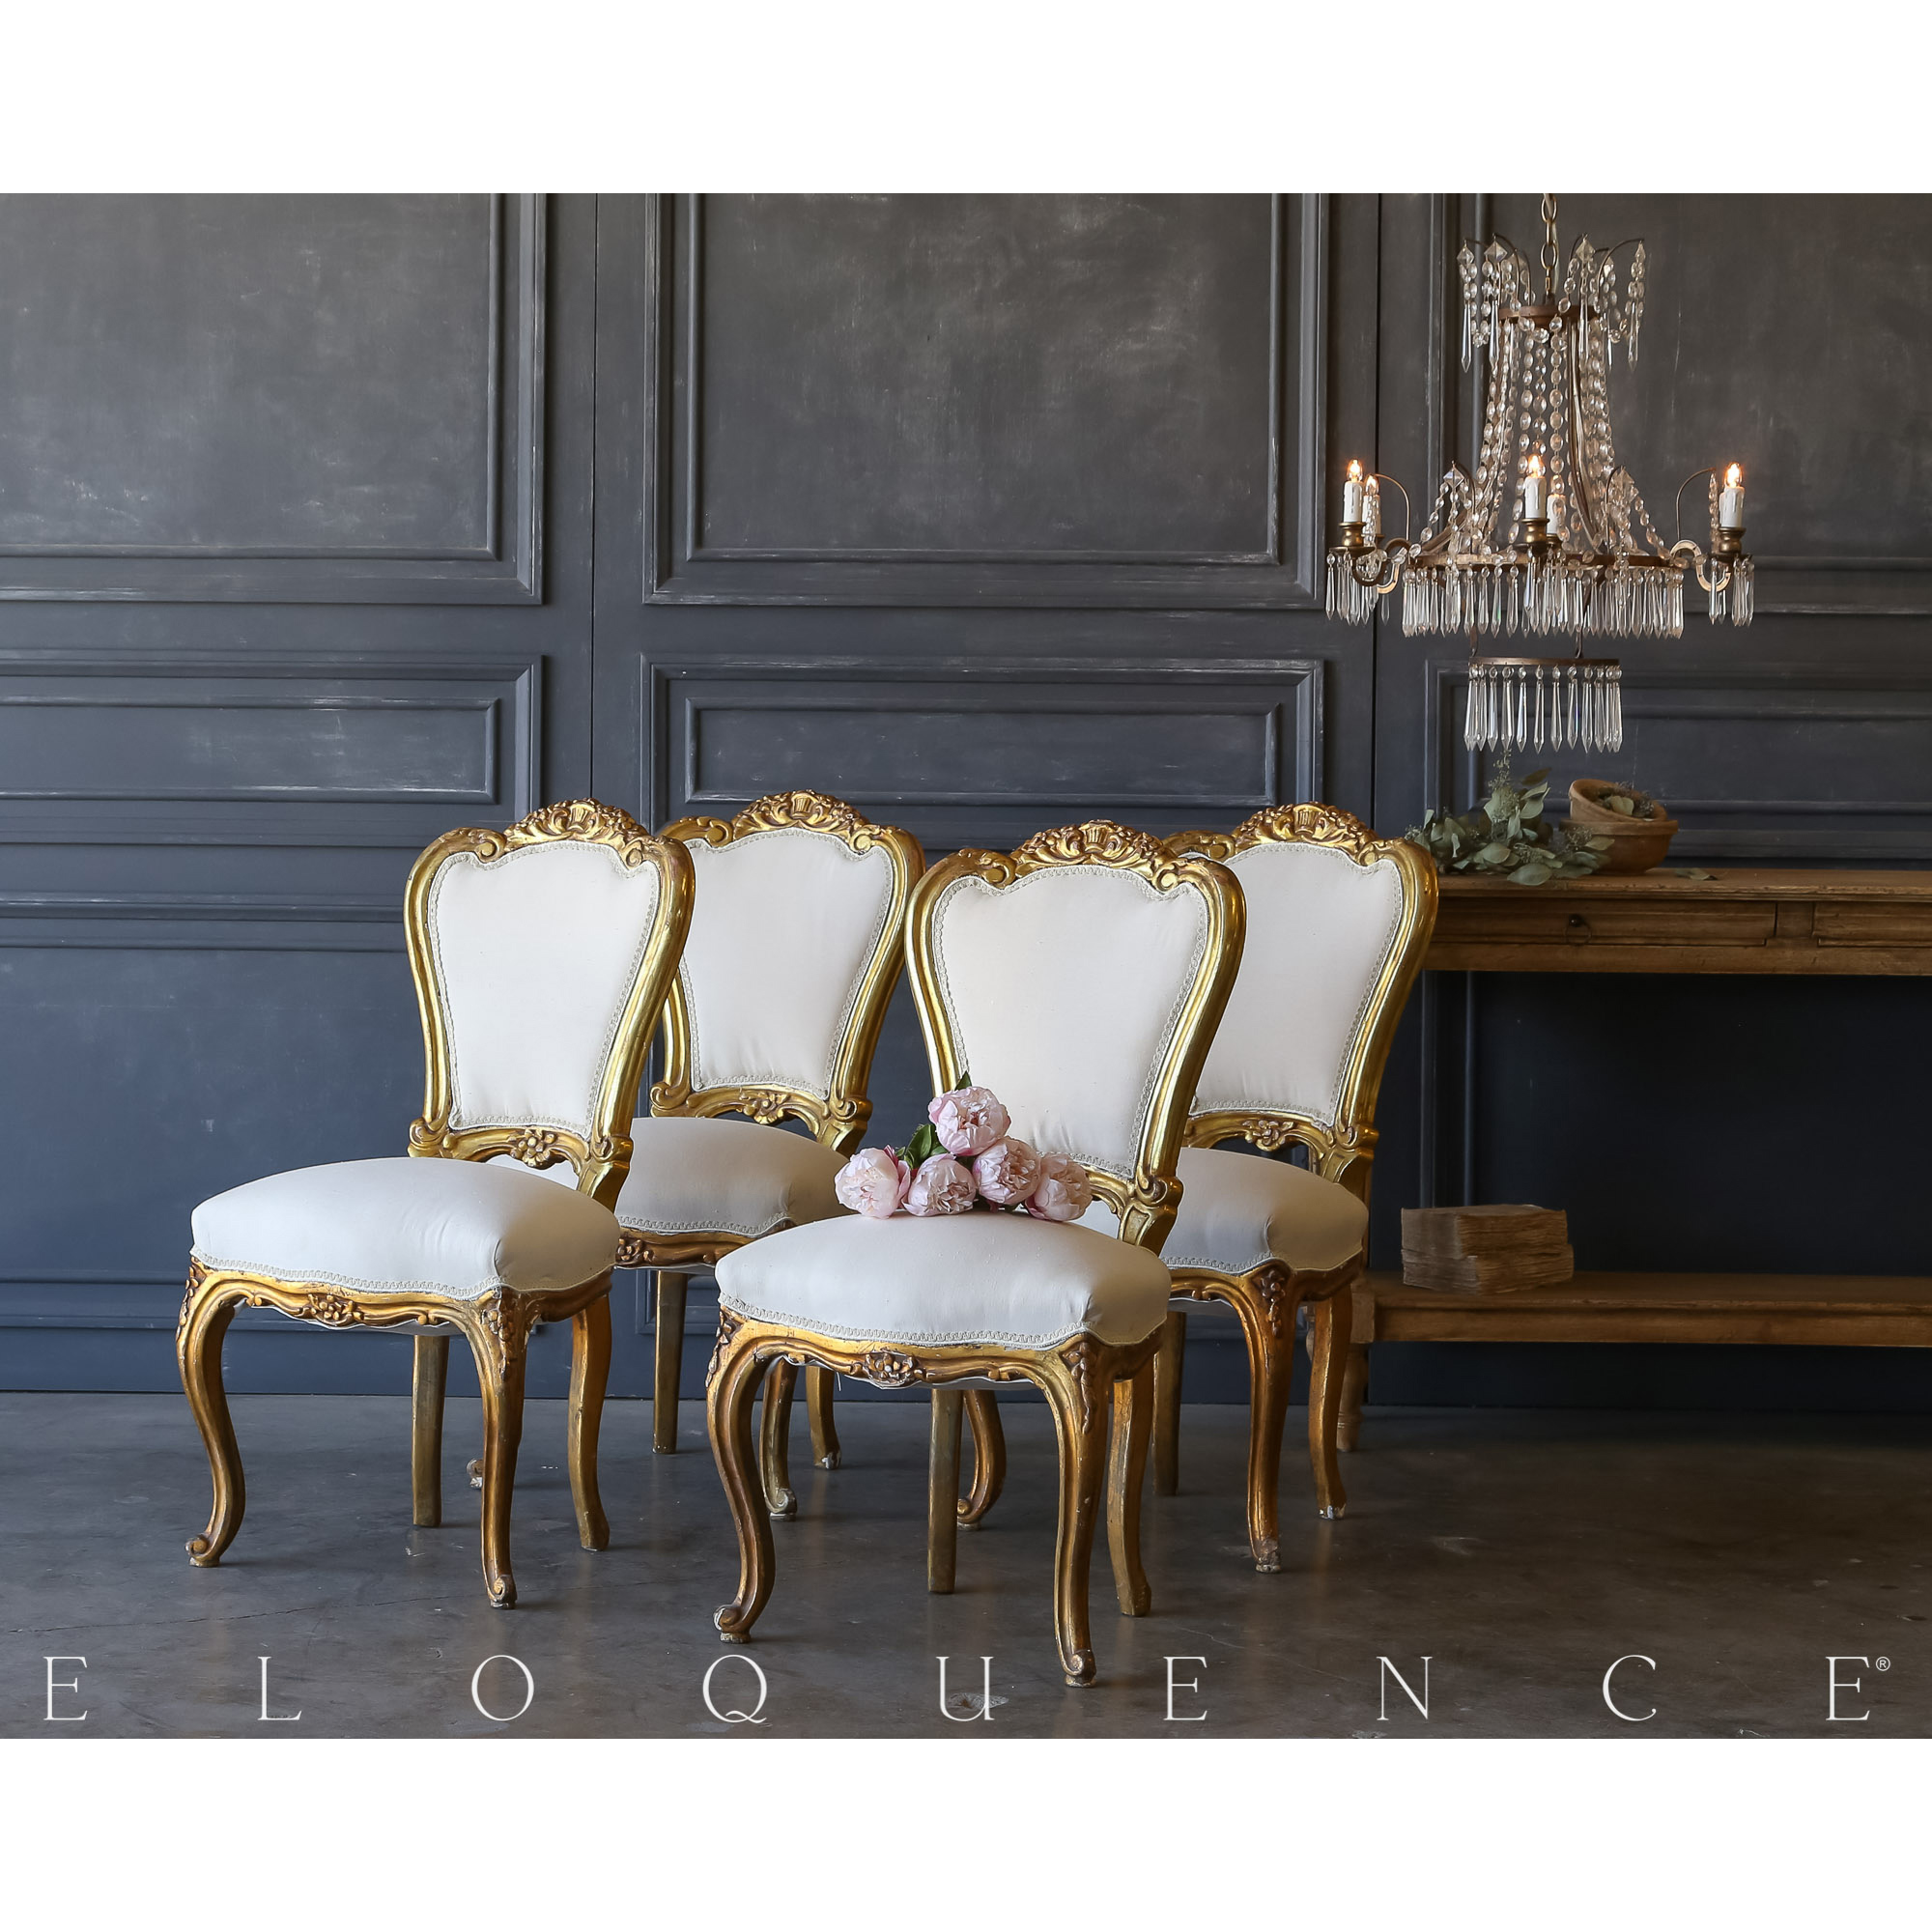 Eloquence® Set of 4 Vintage Gilt Side Chairs: 1940